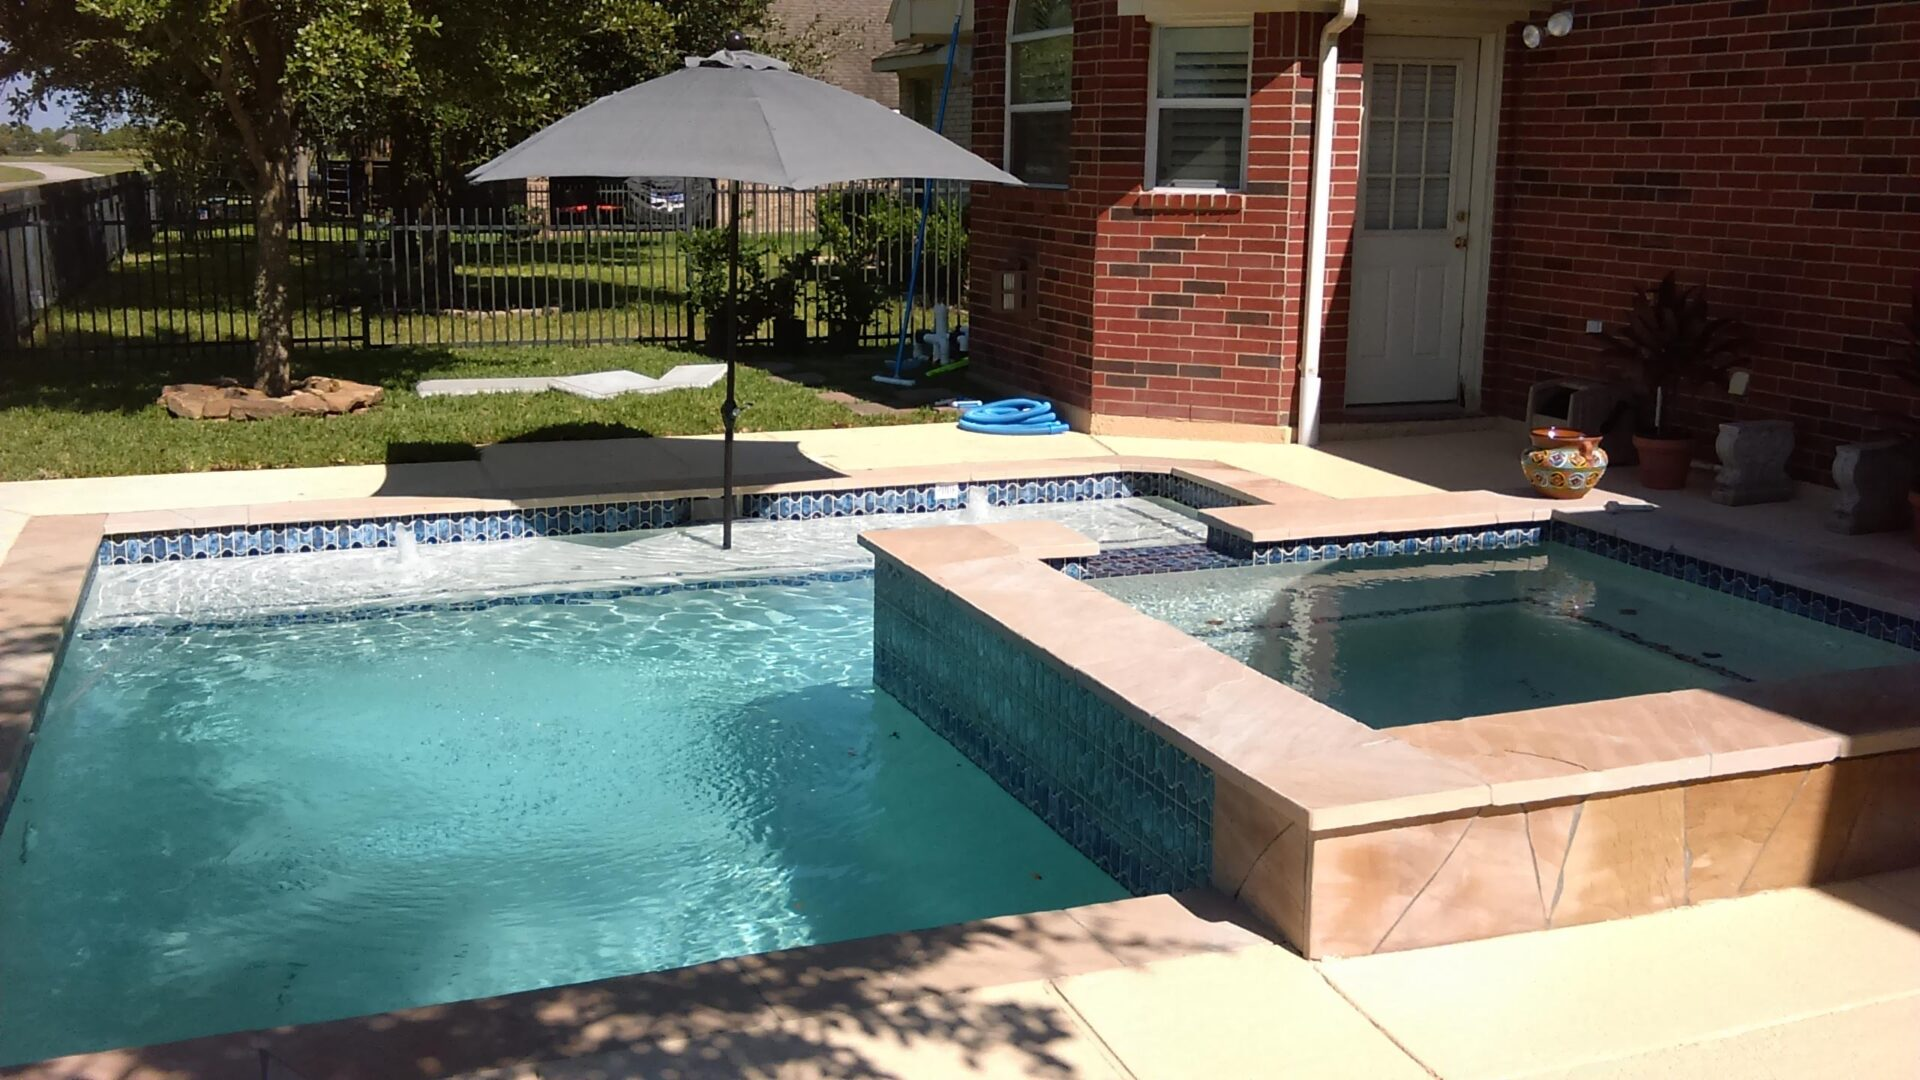 Pool Remodel - Copperfield - After Image006